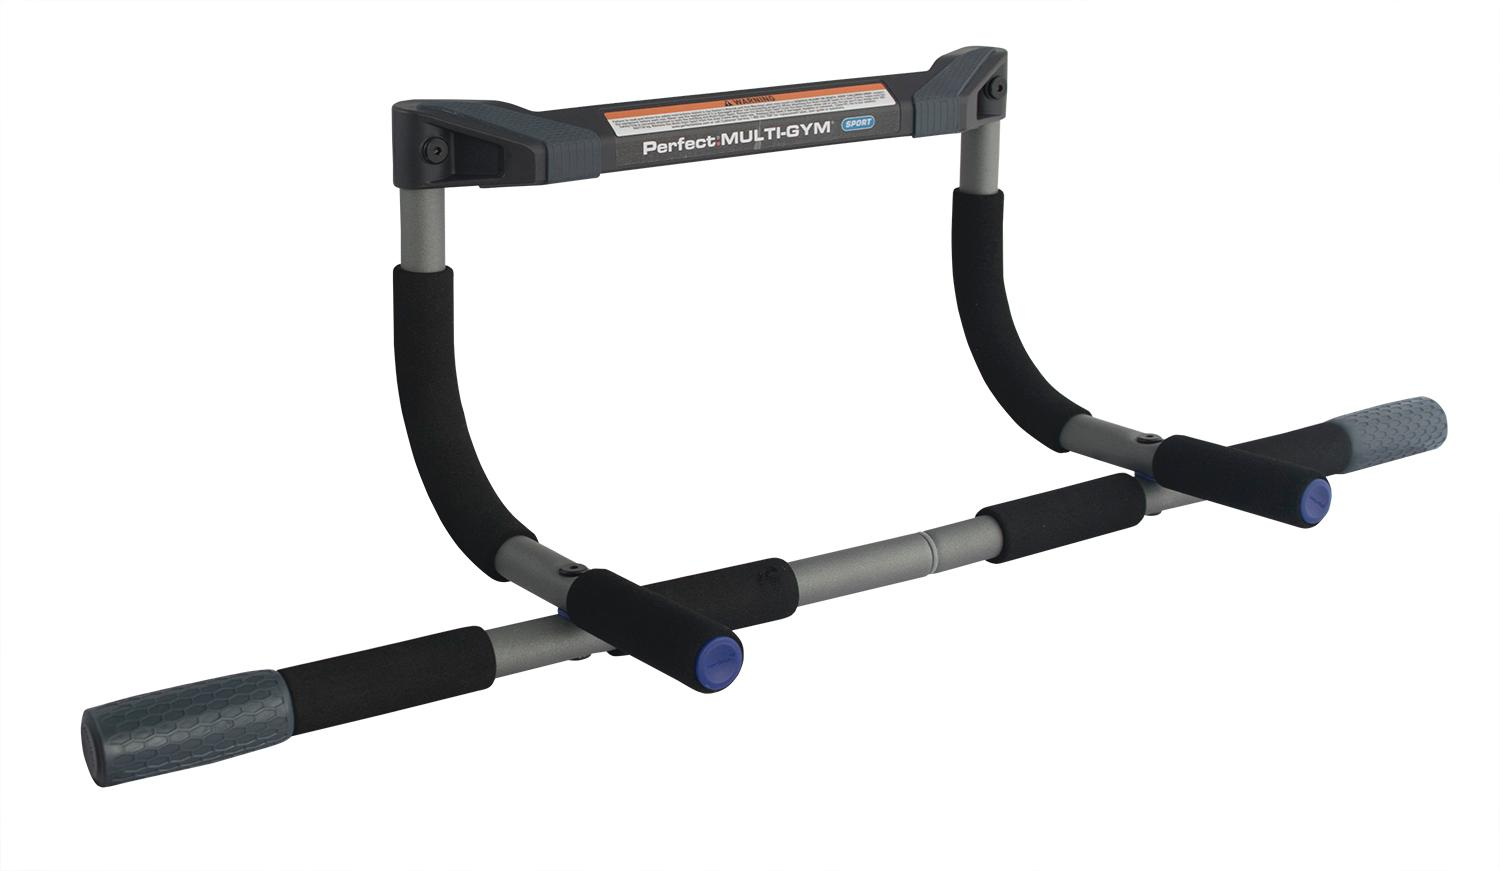 For less than the cost of a month at the gym, you can get the best pull-up bar and work out whenever you want at home. The Sweethome tested six top-rated models and found that the Perfect Fitness.